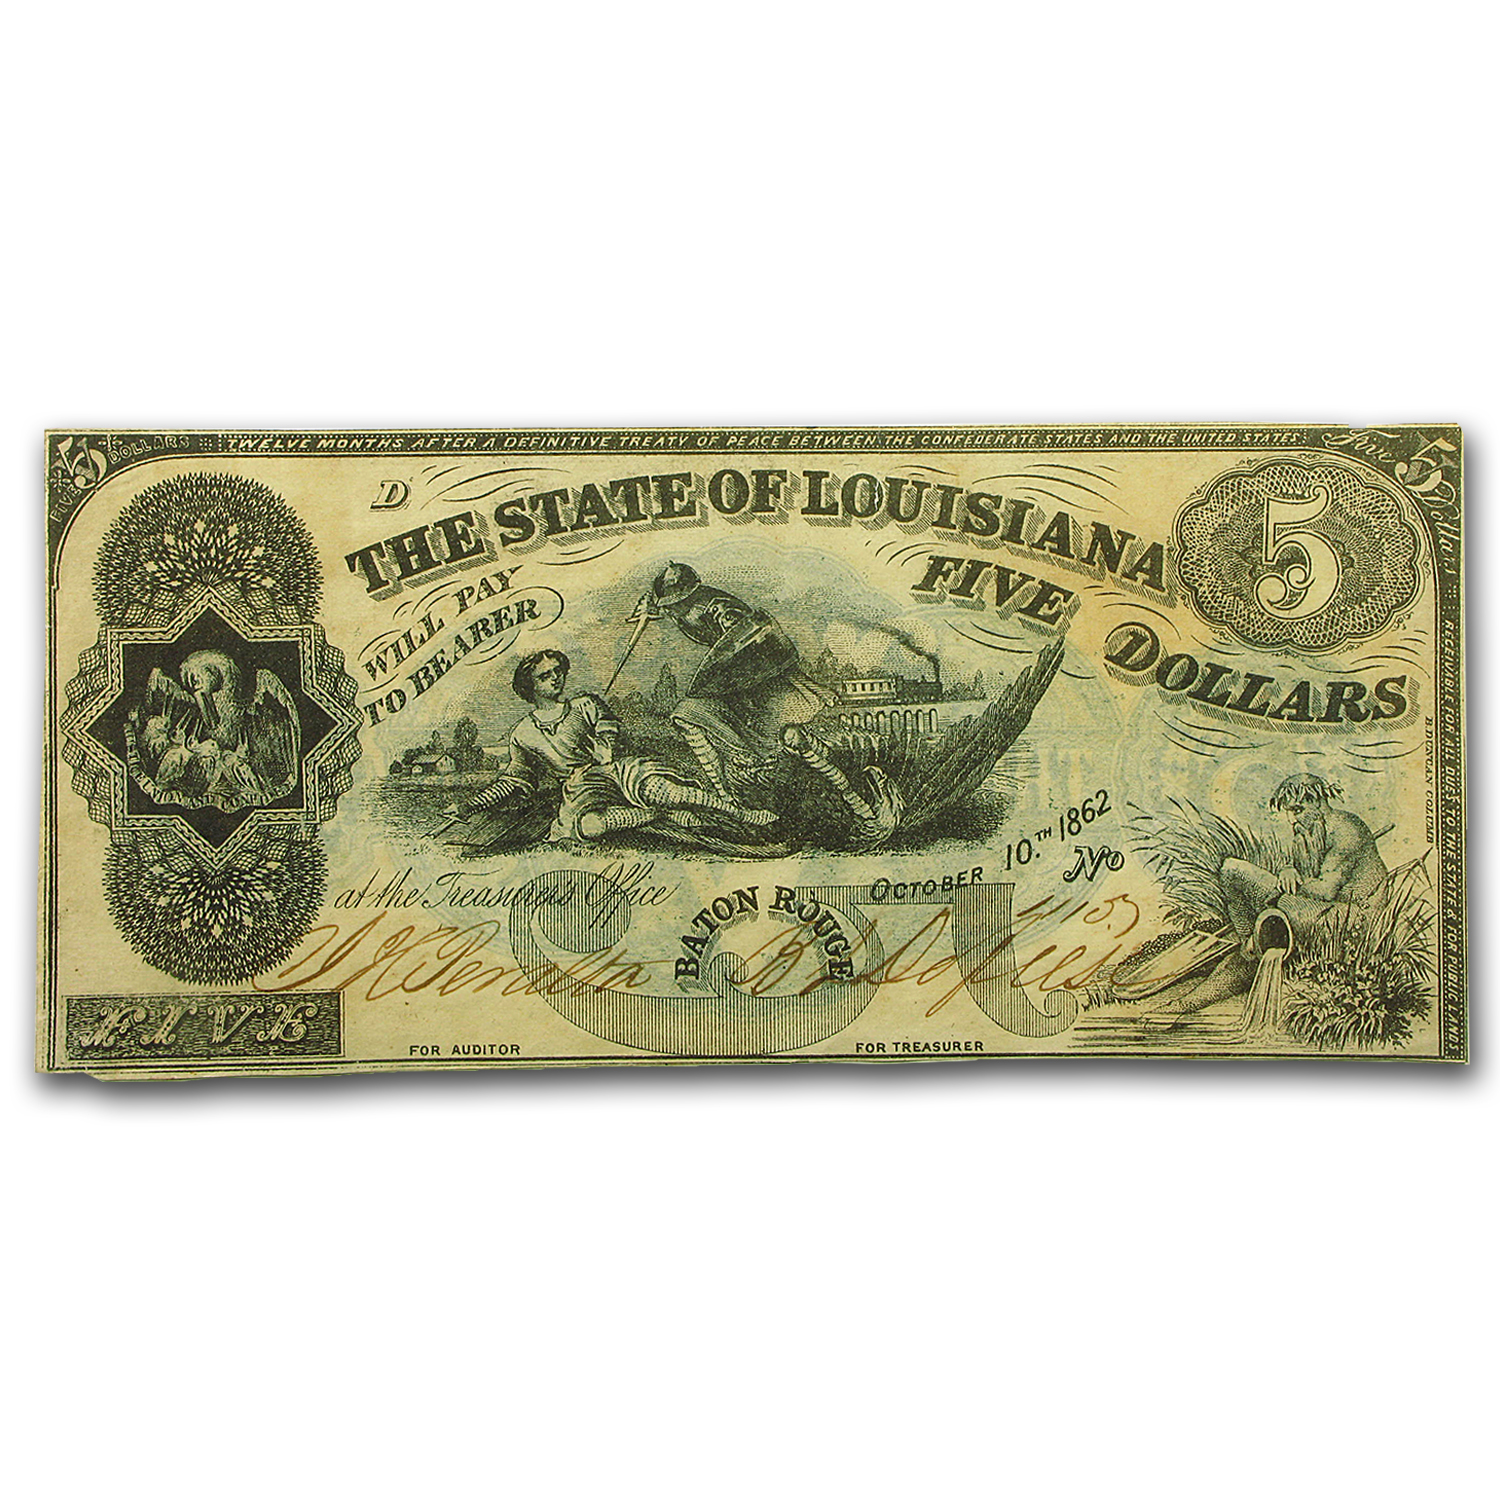 1862 State of Louisiana $5.00 'South Strikes Union' AU (CR#-10)